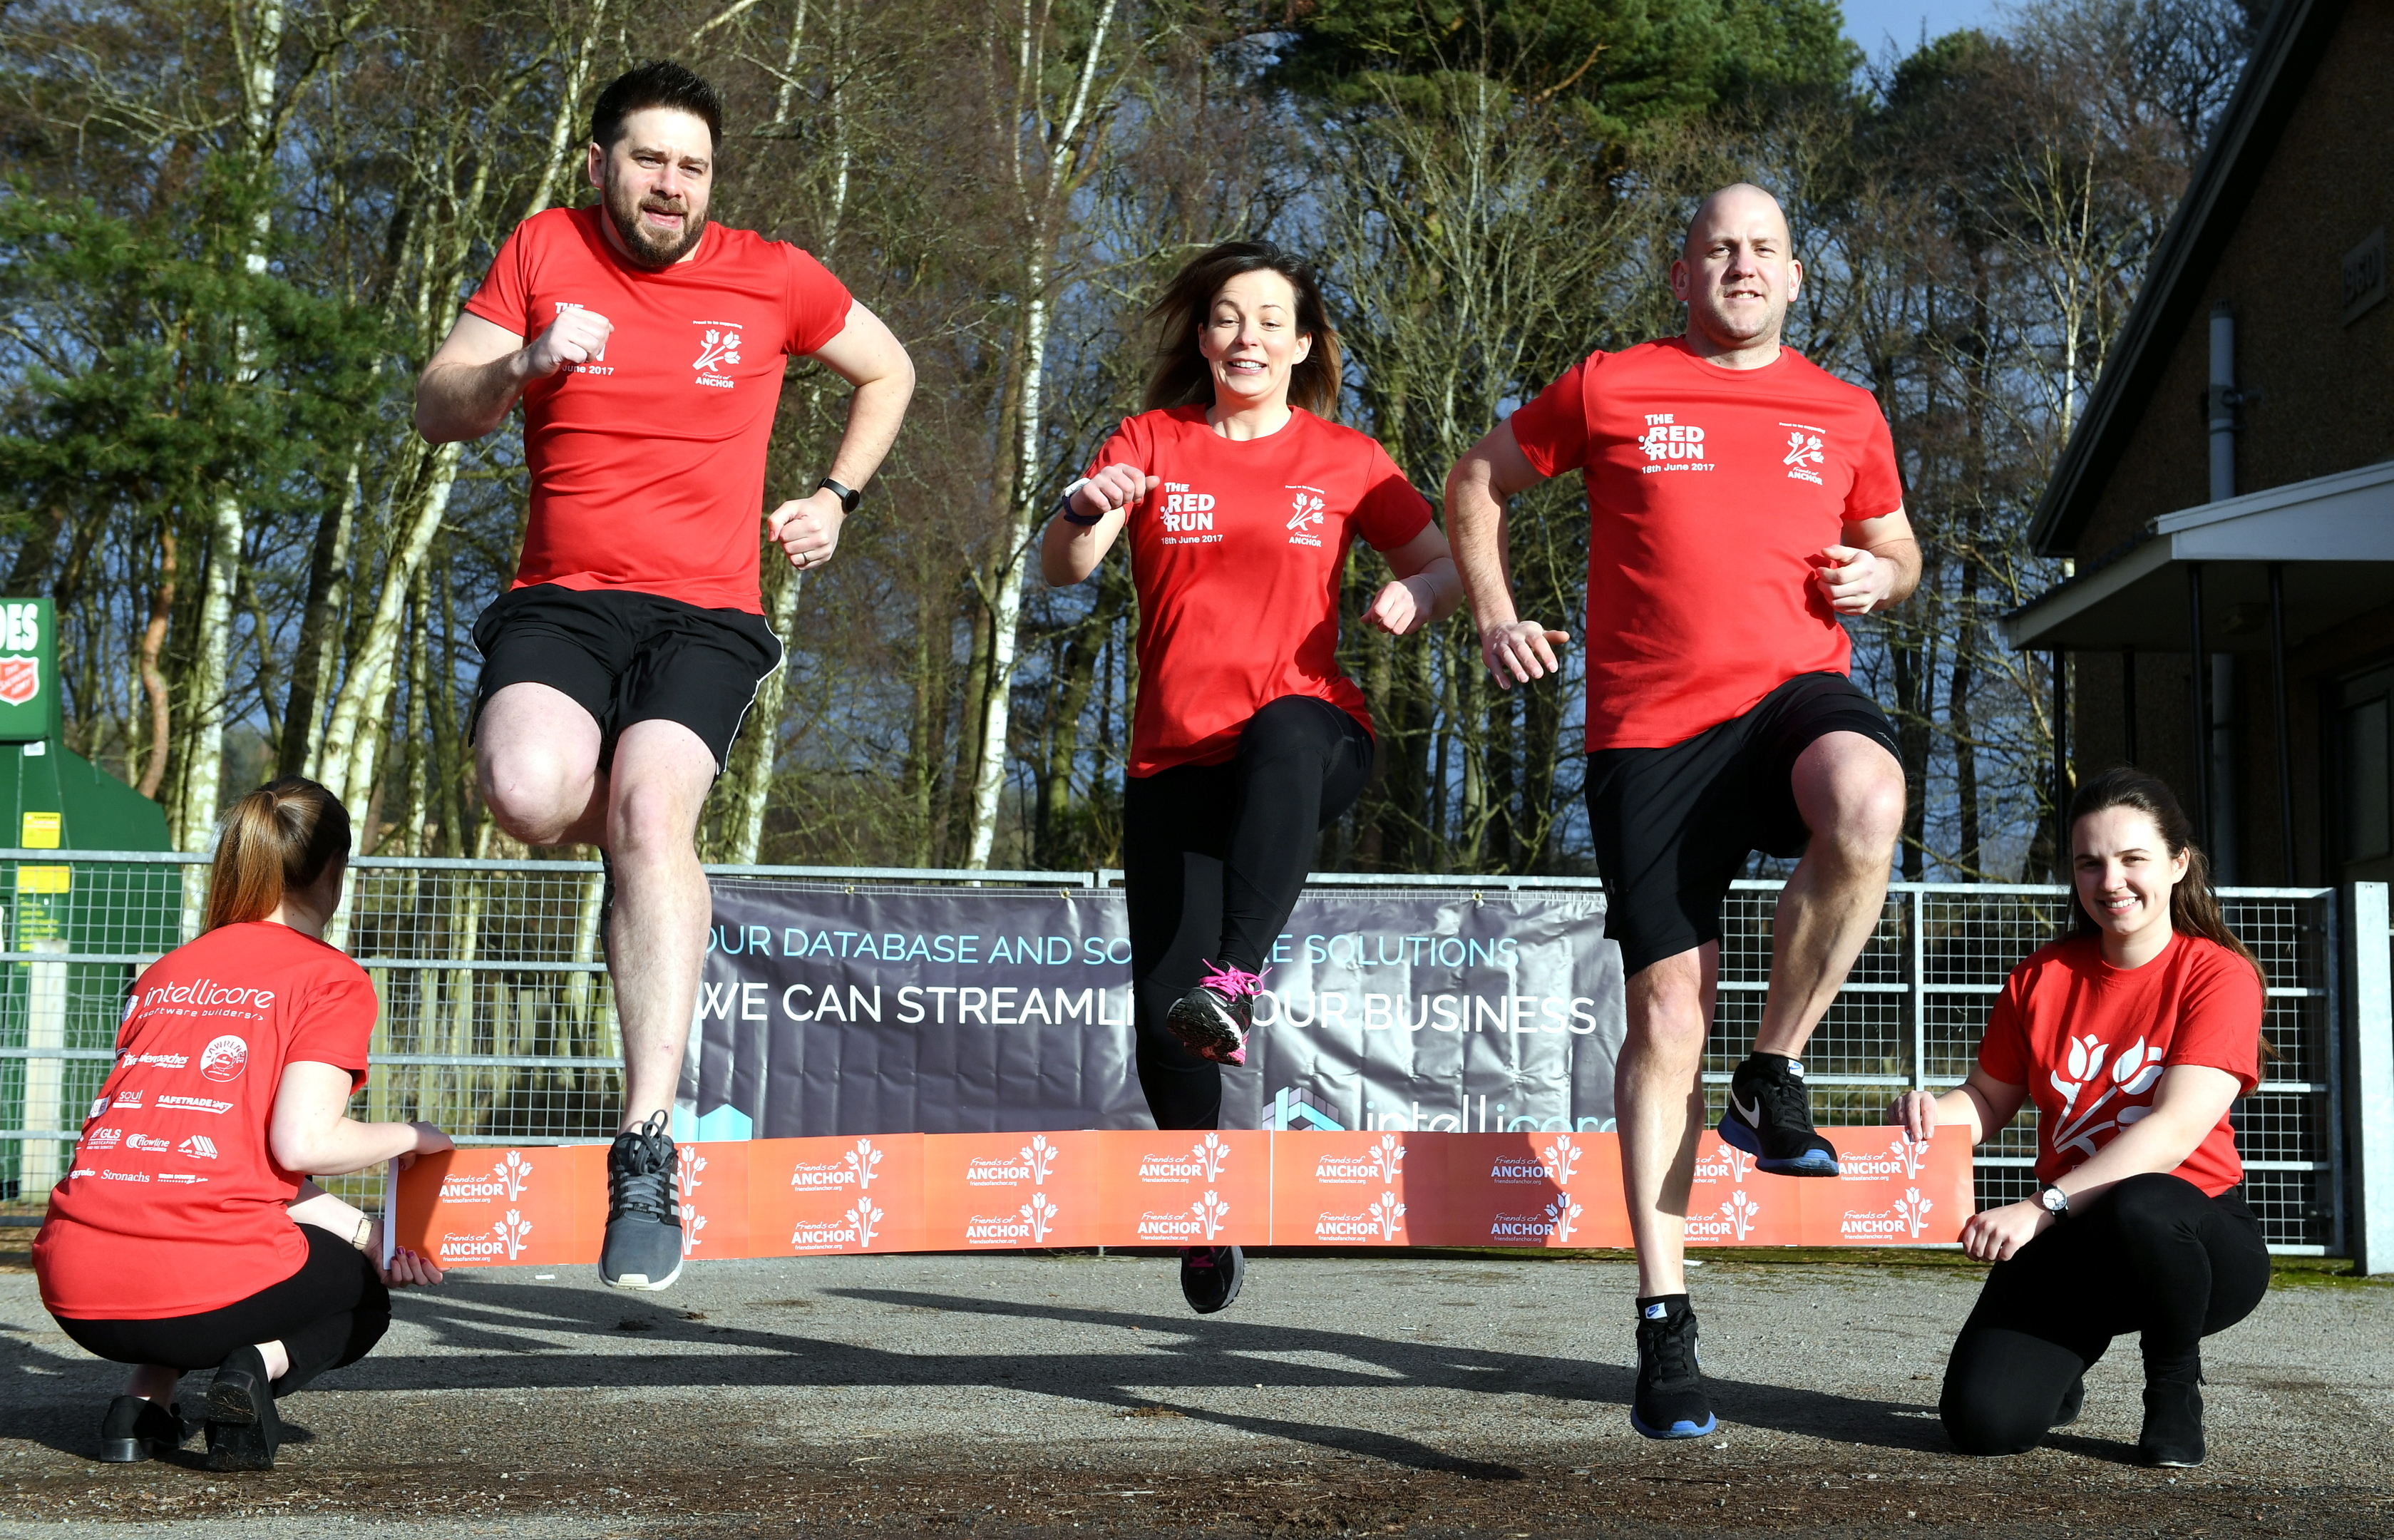 Pictured - L-R Barry Booth (Intellicore), Wendy Bridger and Michael Howden (Red Run organisers) leap over the tape with Ursula Fairlie of Friends of ANCHOR (right).      Picture by Kami Thomson